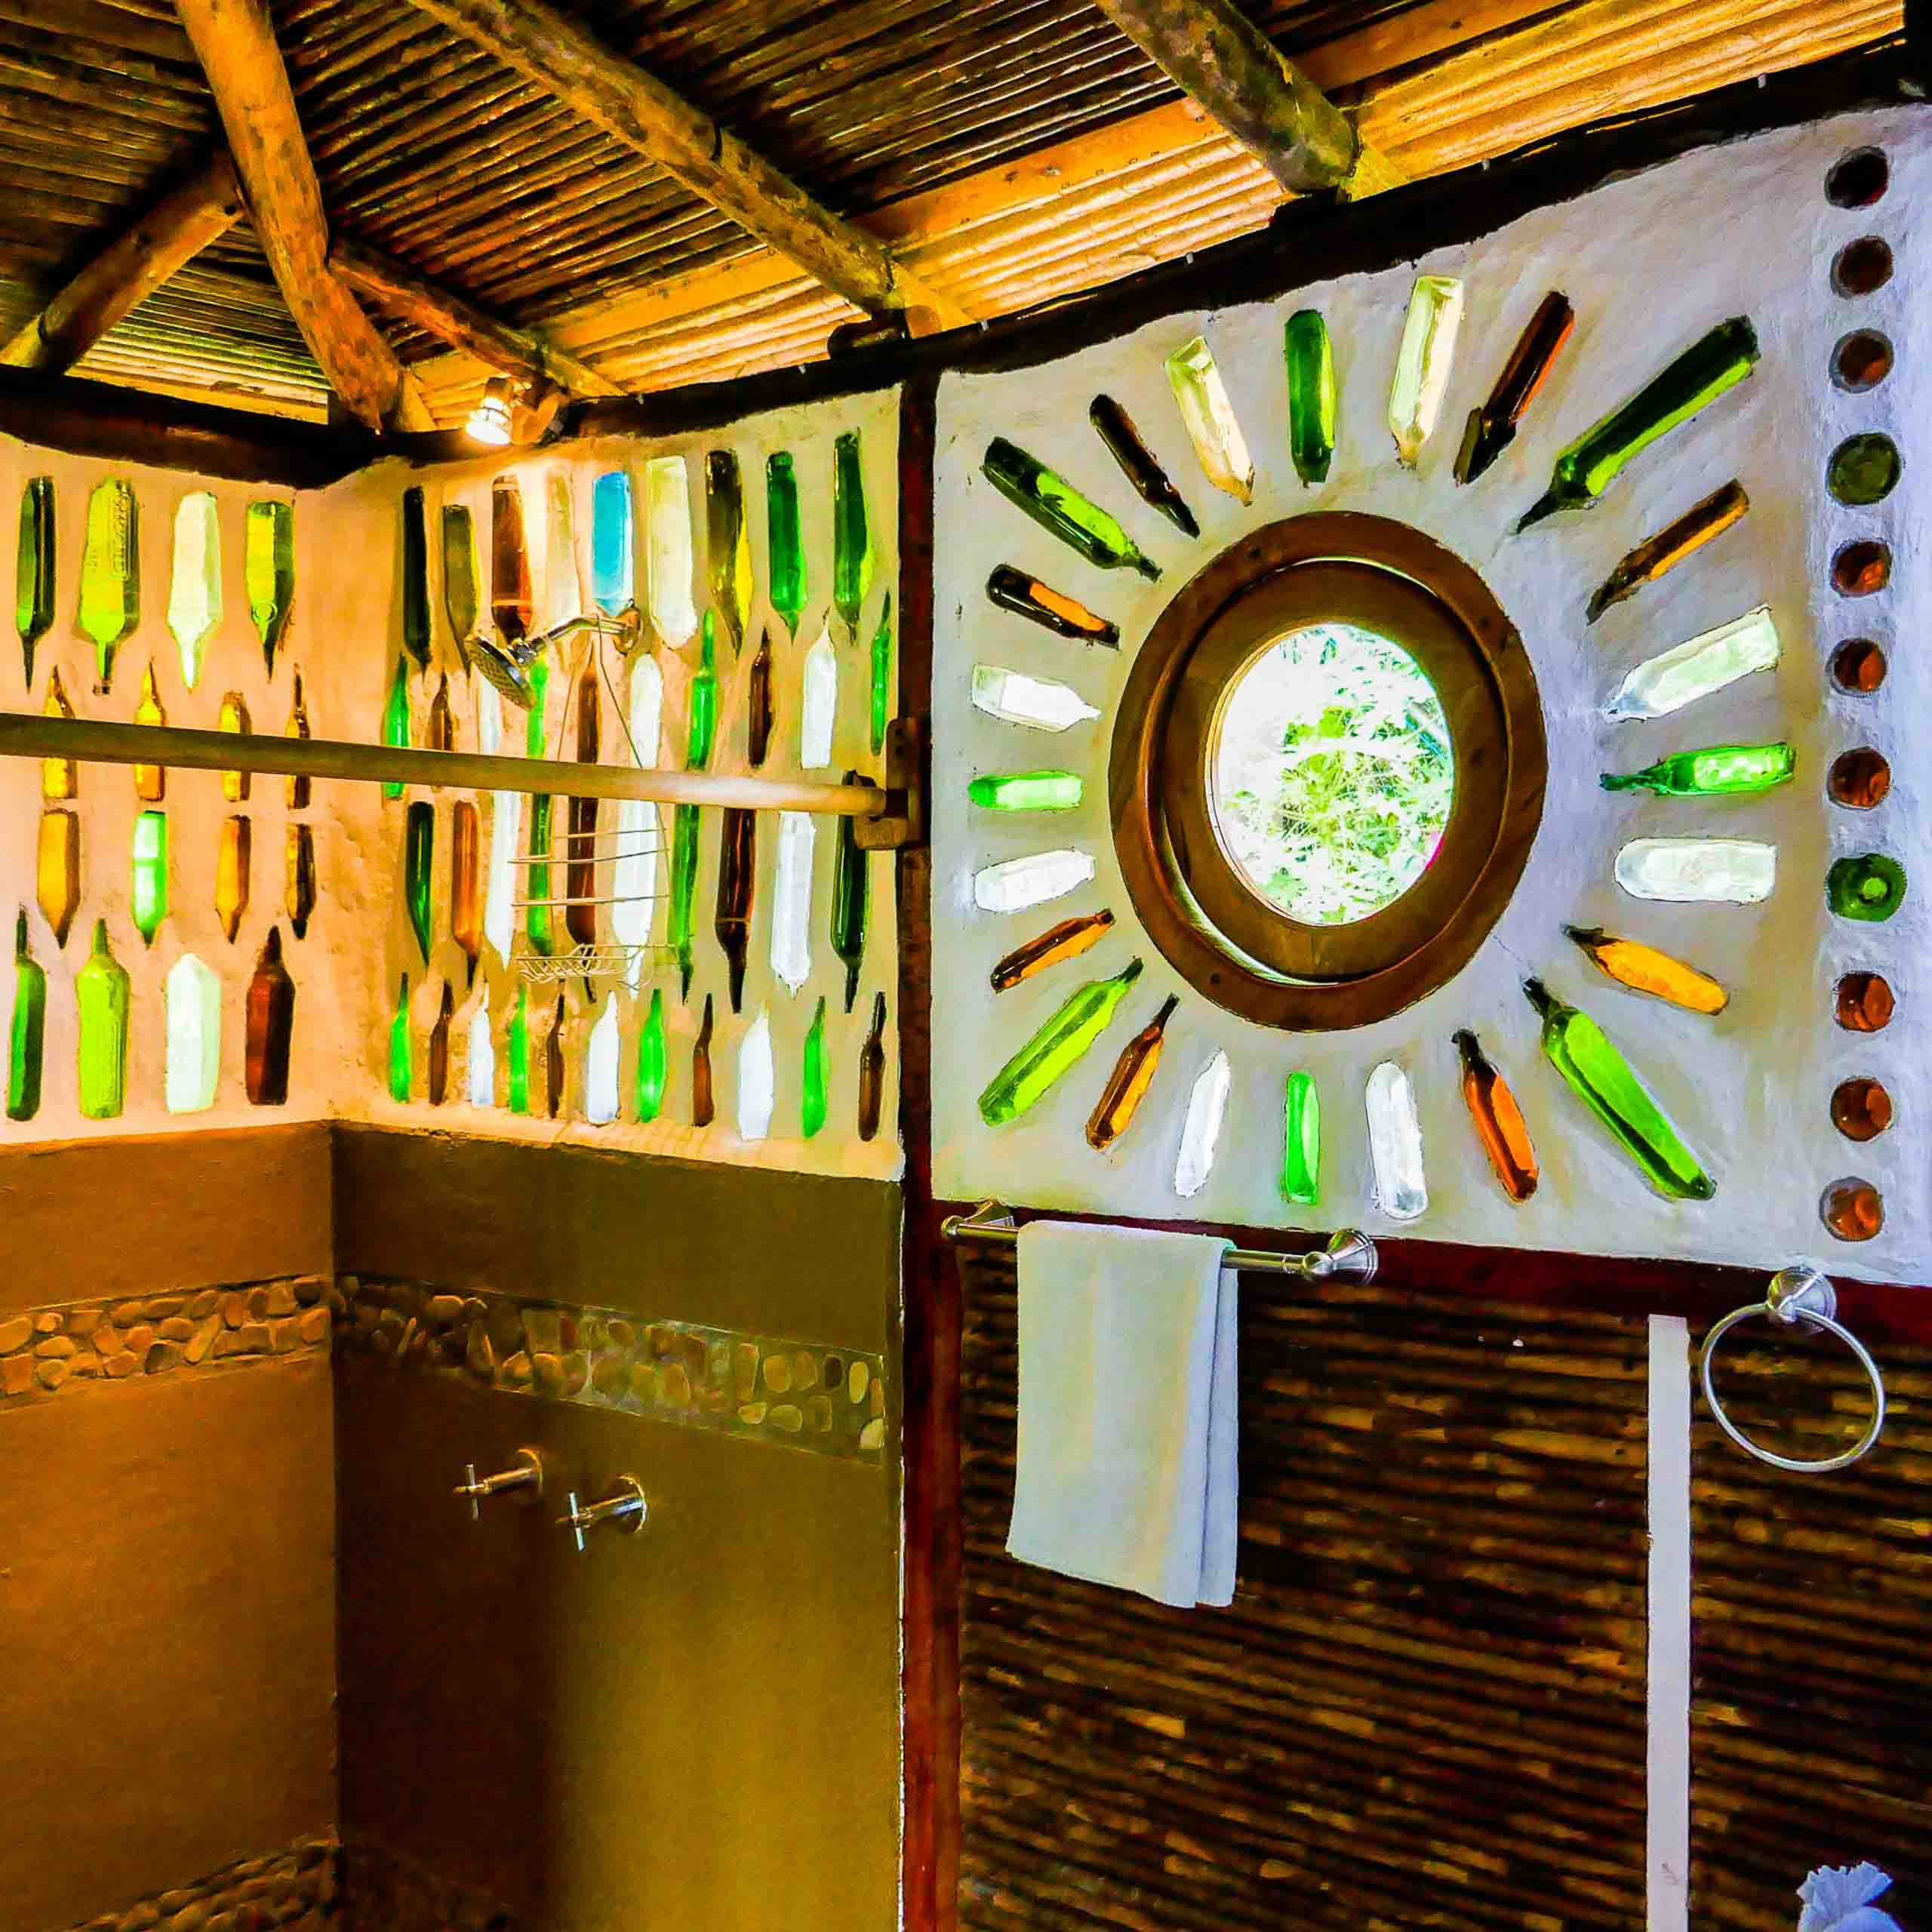 Casa Oro Group Casa-Oro-Group-Rancho-Regeneracion-Regeneration-San-Juan-del-Sur-Nicaragua-Eco-Construction-Natural-Building-Glass-Bottle-Wall-Upcycle-Recycle-Casa-Andalucia-Eco-Lodge-Retreat-Center Rancho Regeneration